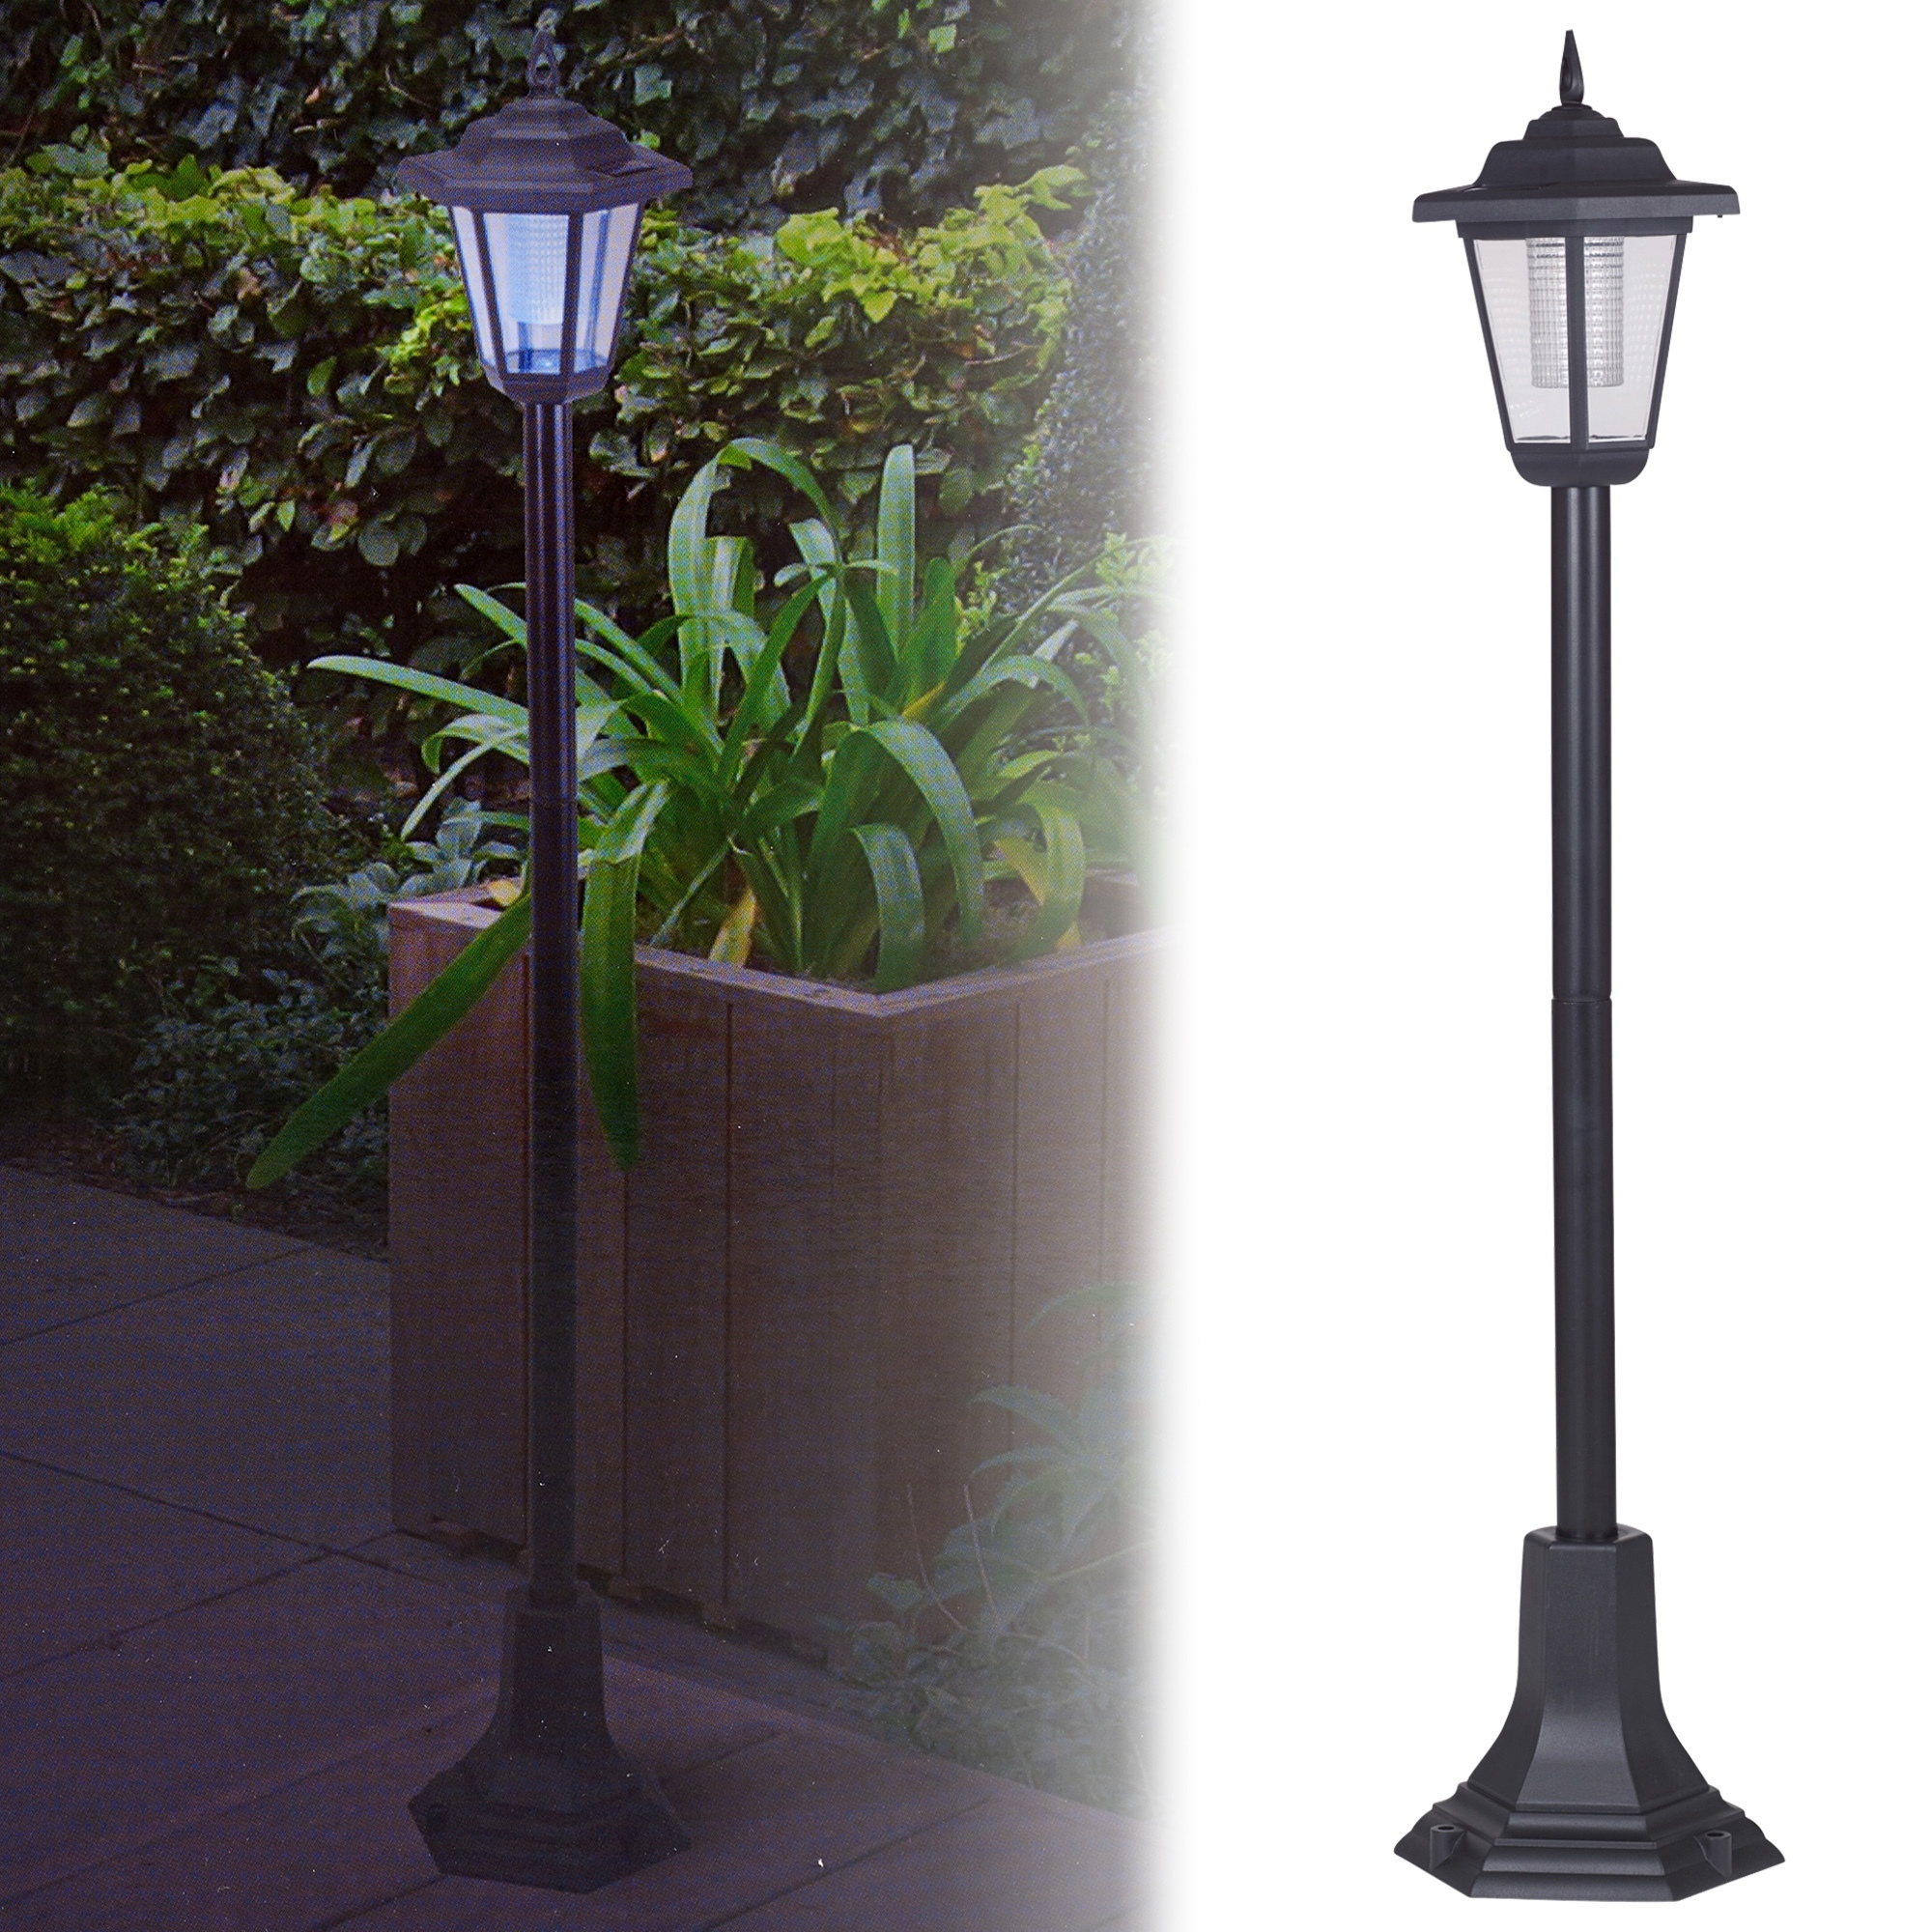 Solar Lights Outdoor Solar Powered Garden Lights Lantern Lamp Black Led Pathway